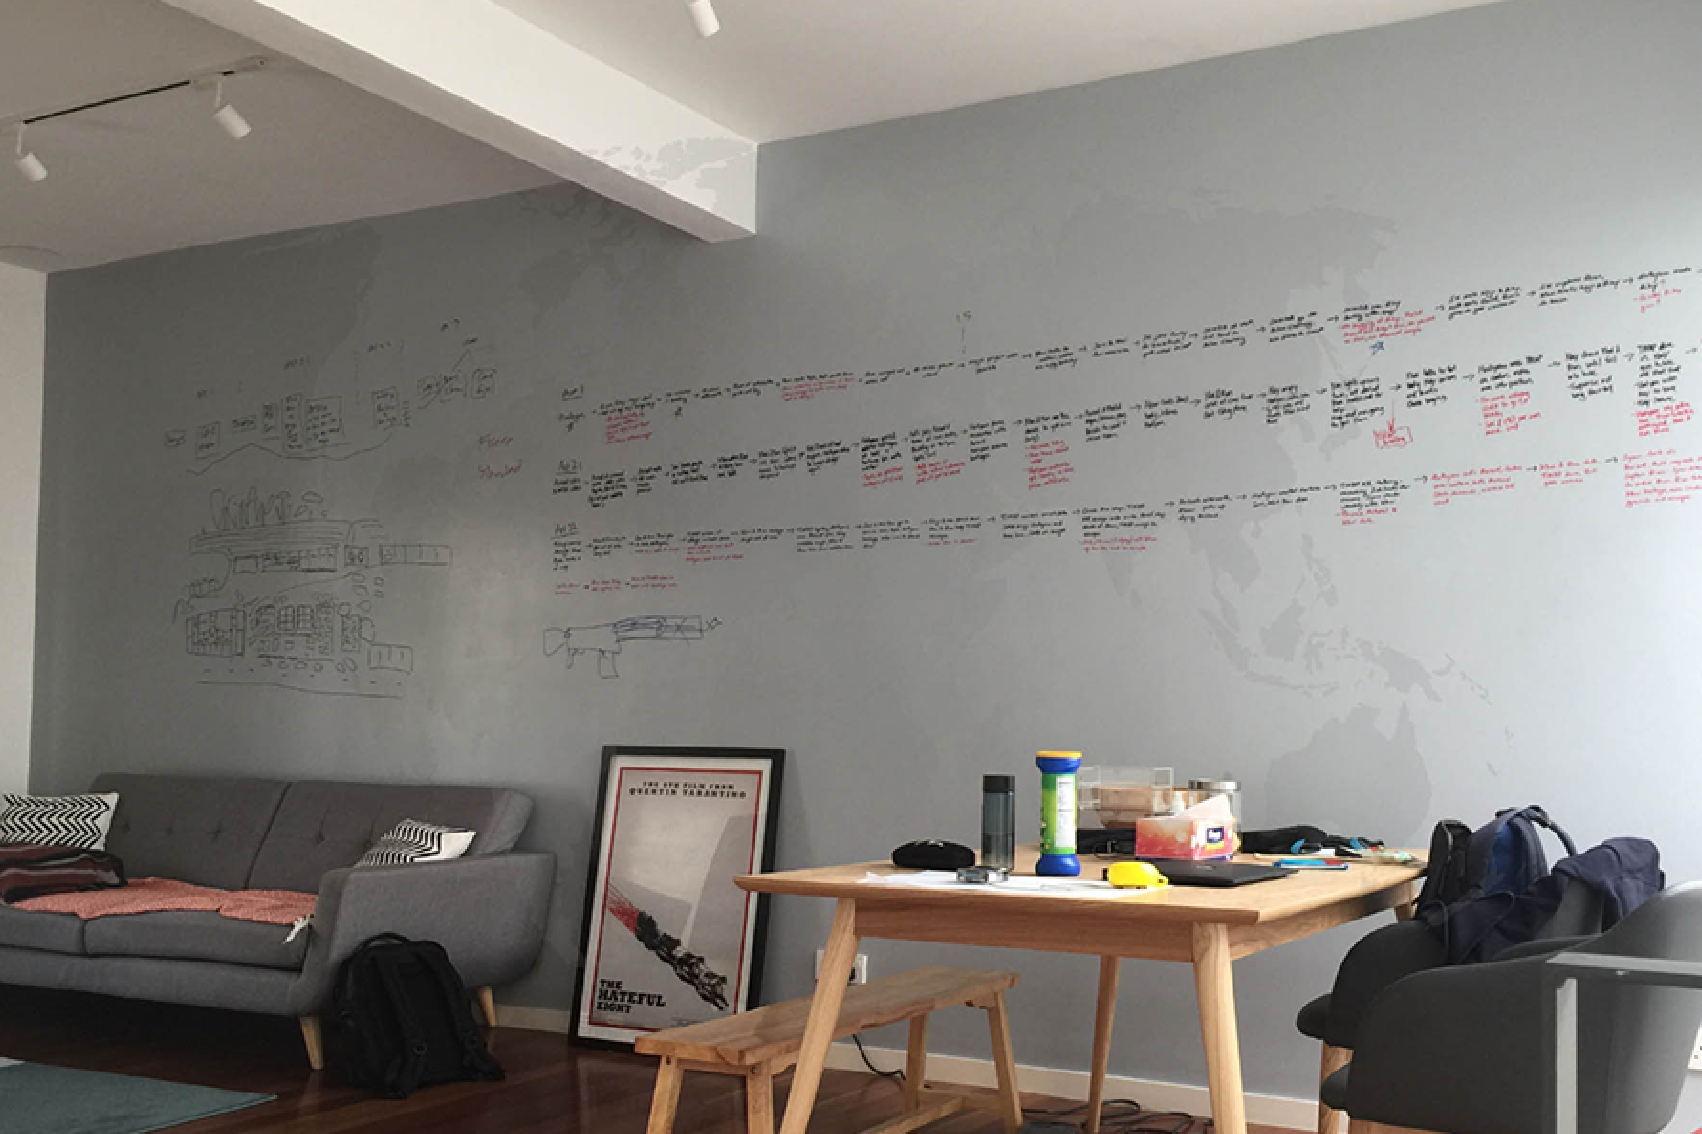 Whiteboard Paint by Candy Paint Asia